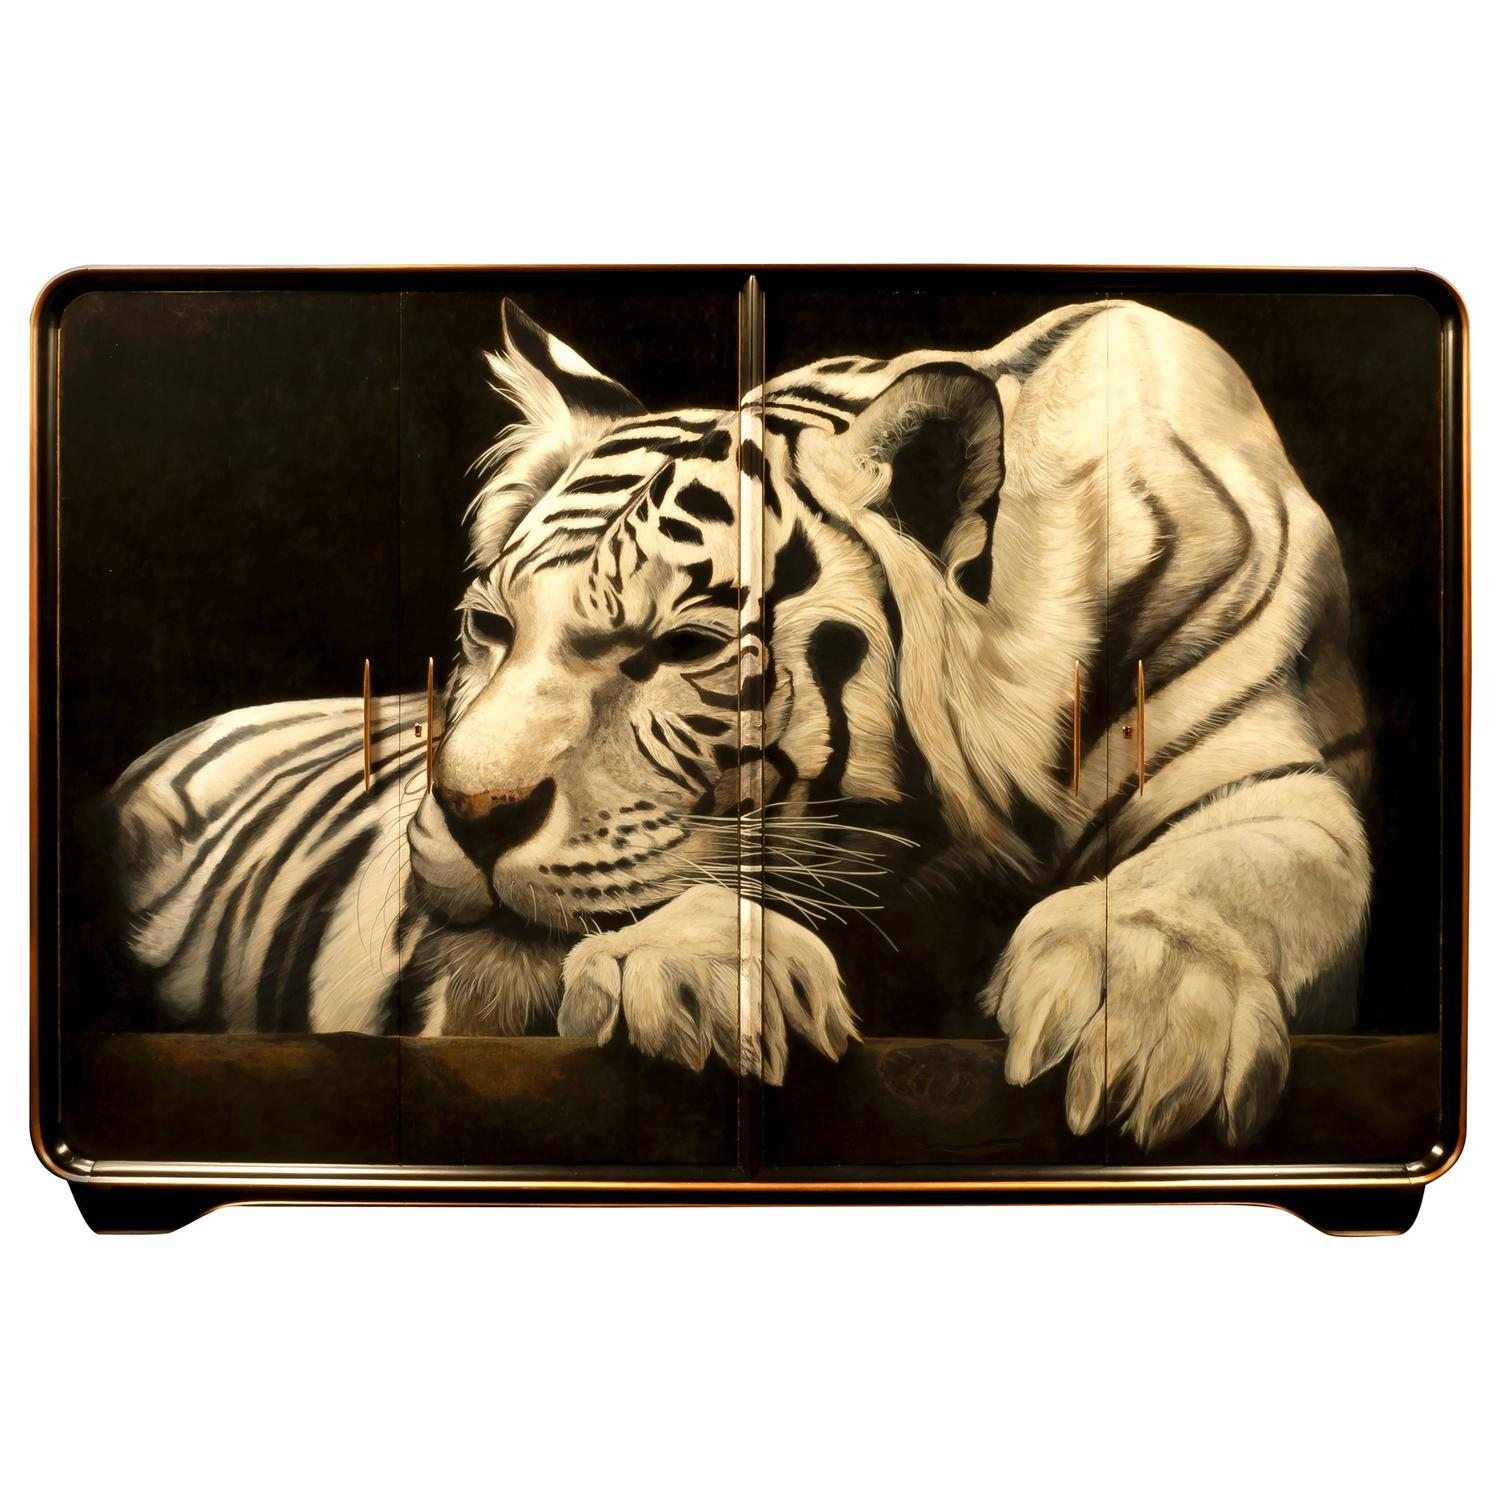 1940s Gentleman 39 S Wardrobe With Giant White Tiger Hand Painted By Kensa Designs For Sale At 1stdibs